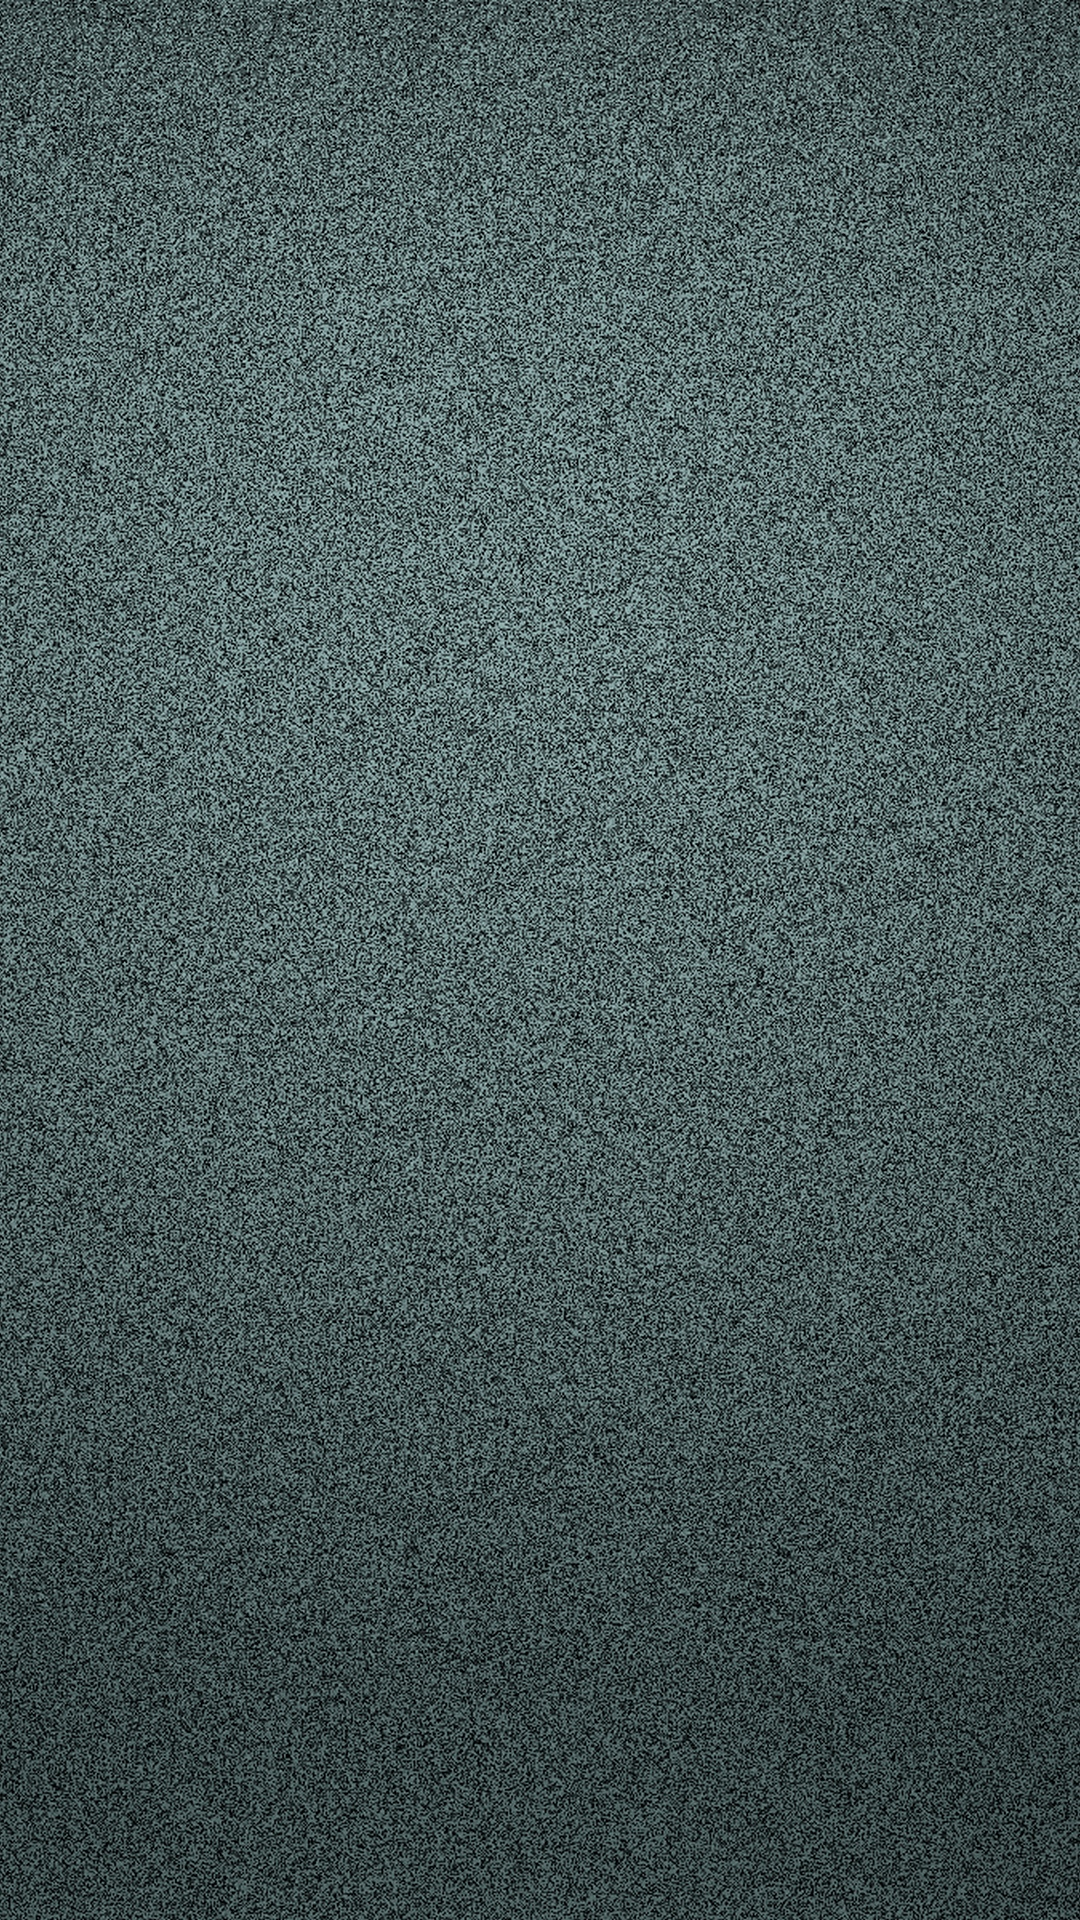 Green Dot Texture Wallpaper for Galaxy S4, background in 1080x1920 resolution